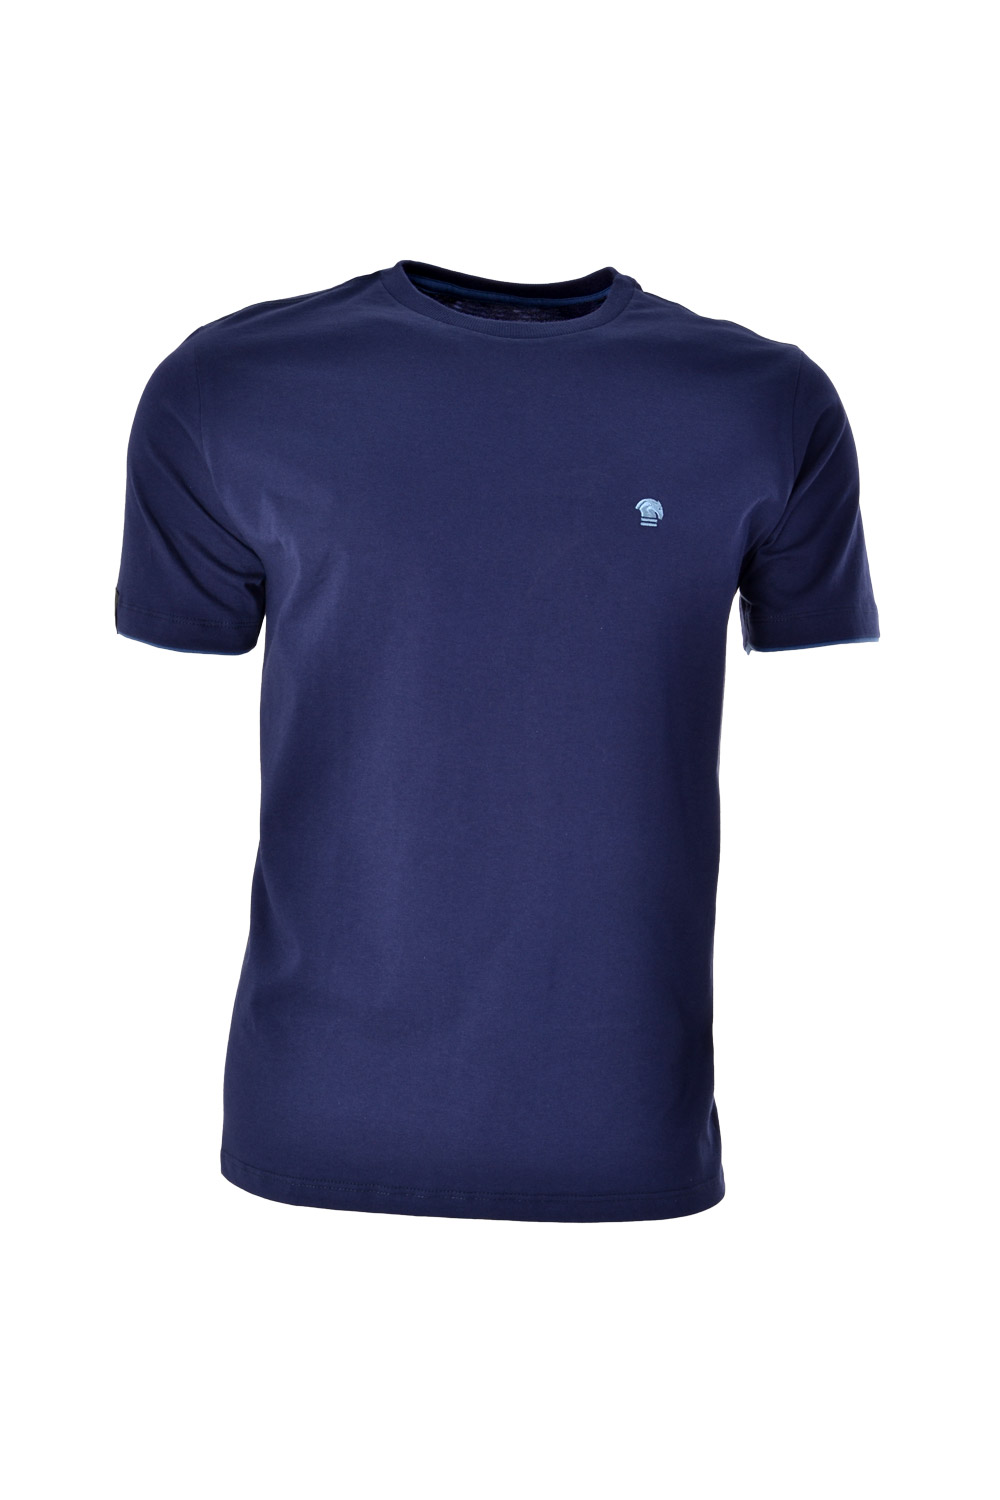 CAMISETA MC BLUES ALGODAO GOLA C LISO COMPOSE PV18